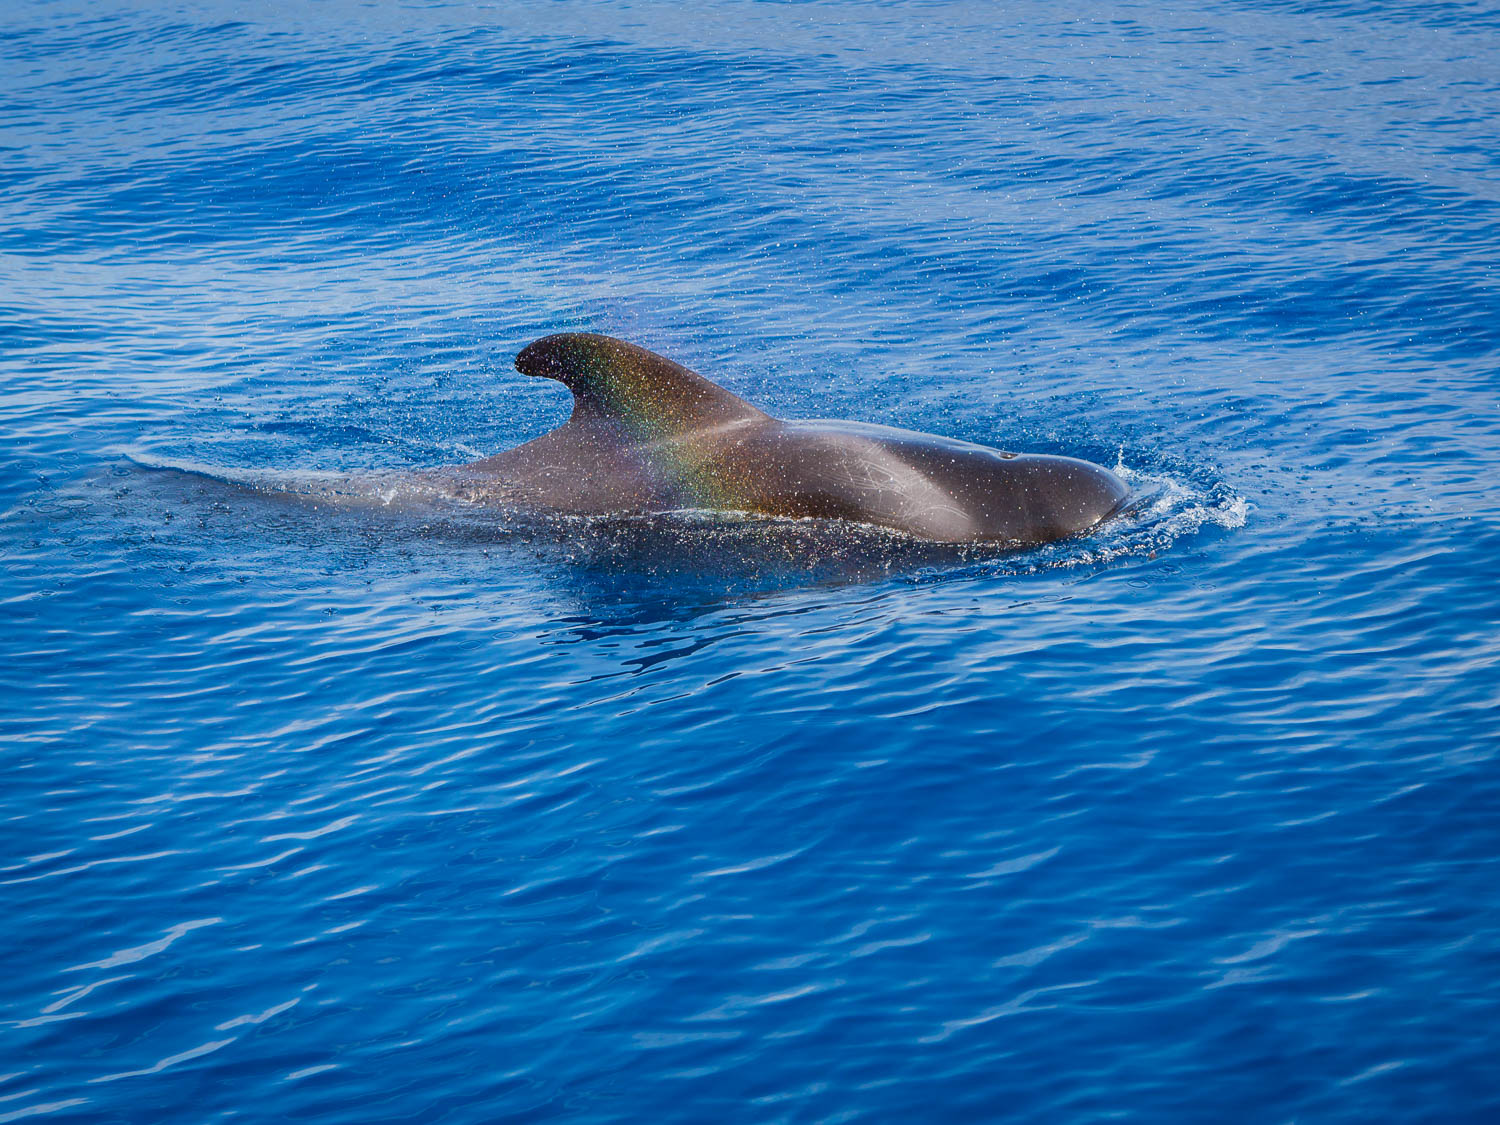 The Rainbow and the Pilot Whale